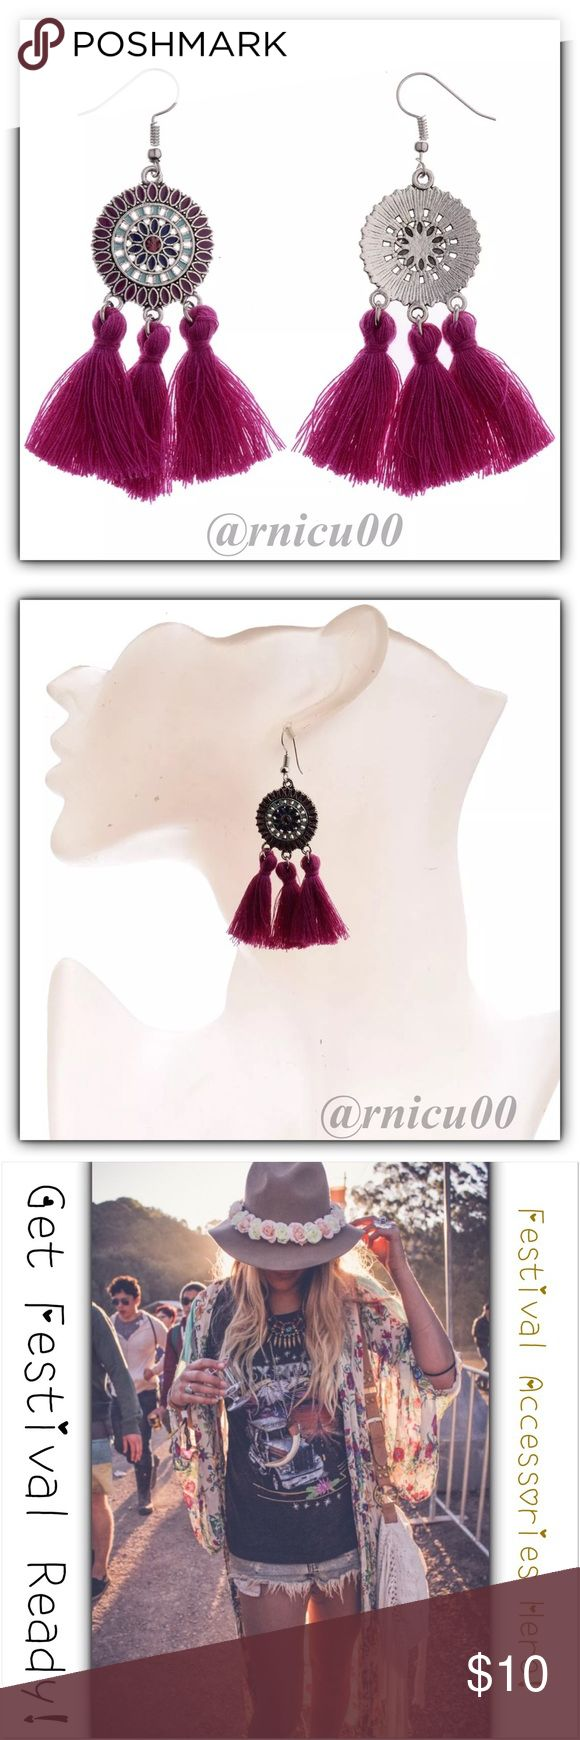 🆕Boho Festival Ready Purple Tassel Earrings! Adorable New Arrival Today, Fun Cotton String Tassel Earrings in 3 Different Colors! 📿Get Festival Ready & Get all your Boho Accessories Here!!📿 Feather, Tassel & Bead Earrings are a TOP TREND this Year! Perfect Accessory for your Festival Dress with Purple Tassels & Silver Flower Detailing-these are Amazing! 🕶 Hook Style for pierced ears, Not heavy👌  *NO TRADES *Prices are FIRM-Listed at Lowest Price Unless BUNDLED! *Sales are Final-Please…